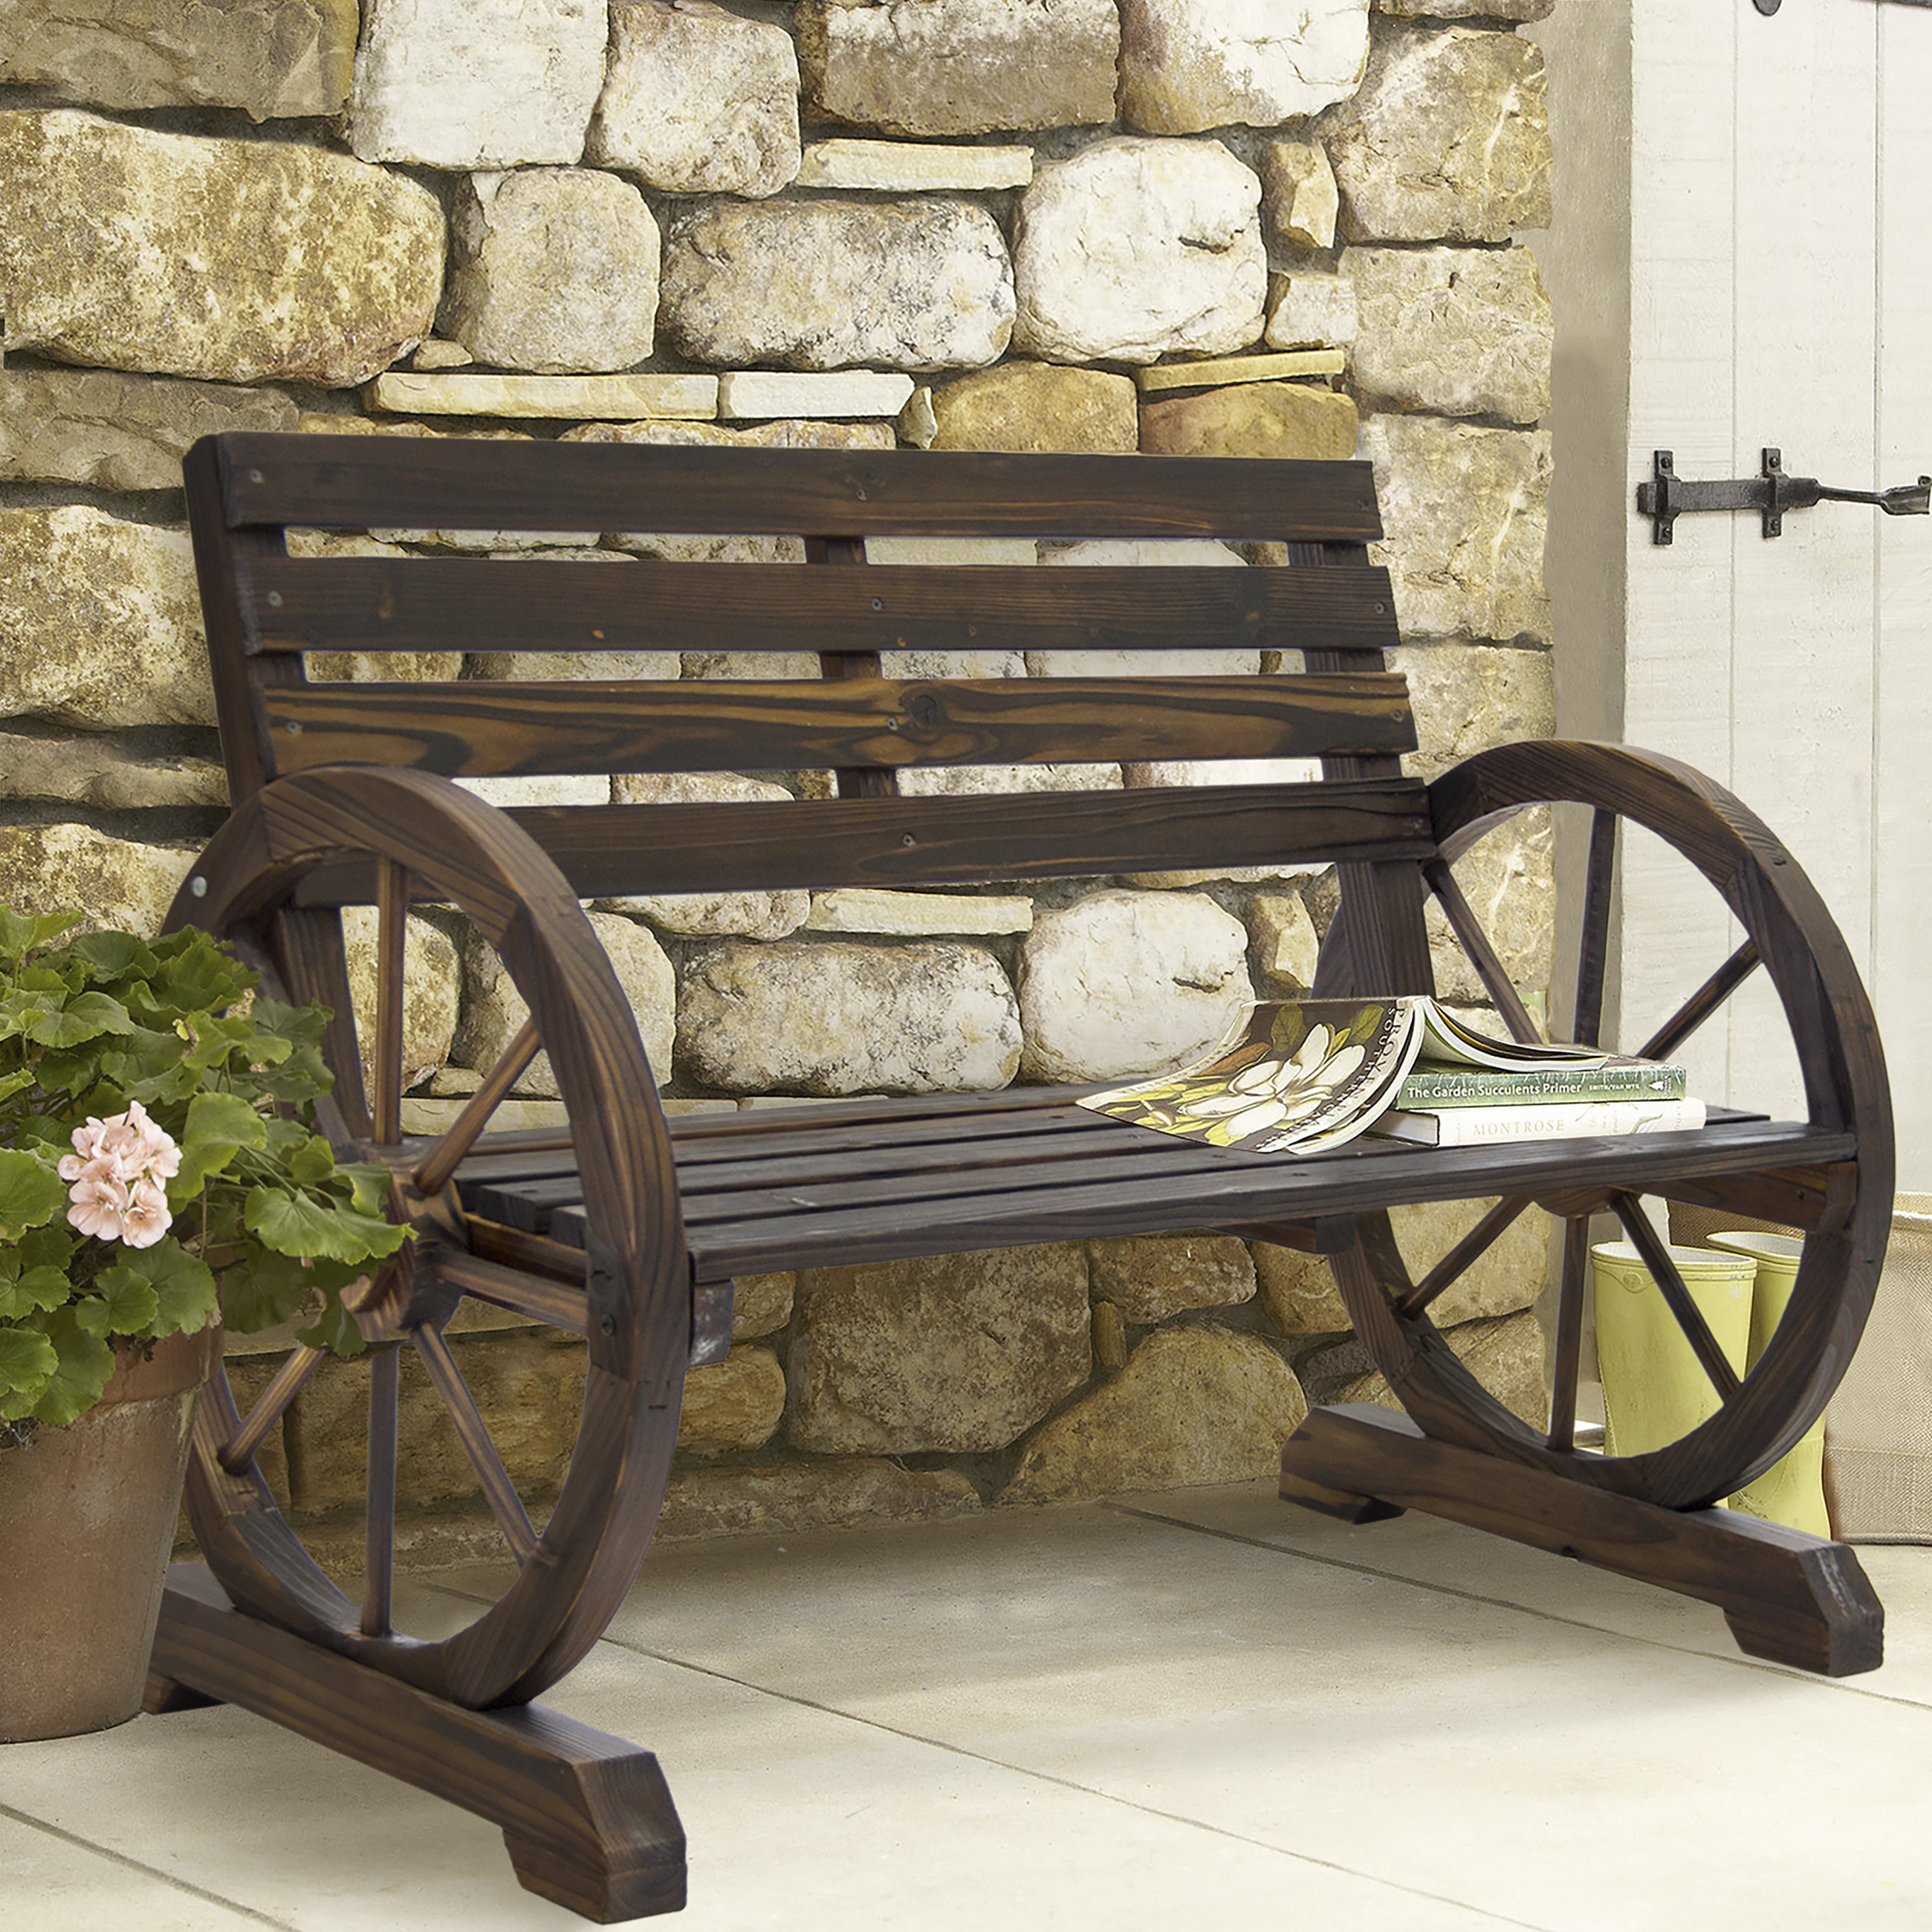 outdoor the pin coppice from fencing garden wyre furniture creations and rustic